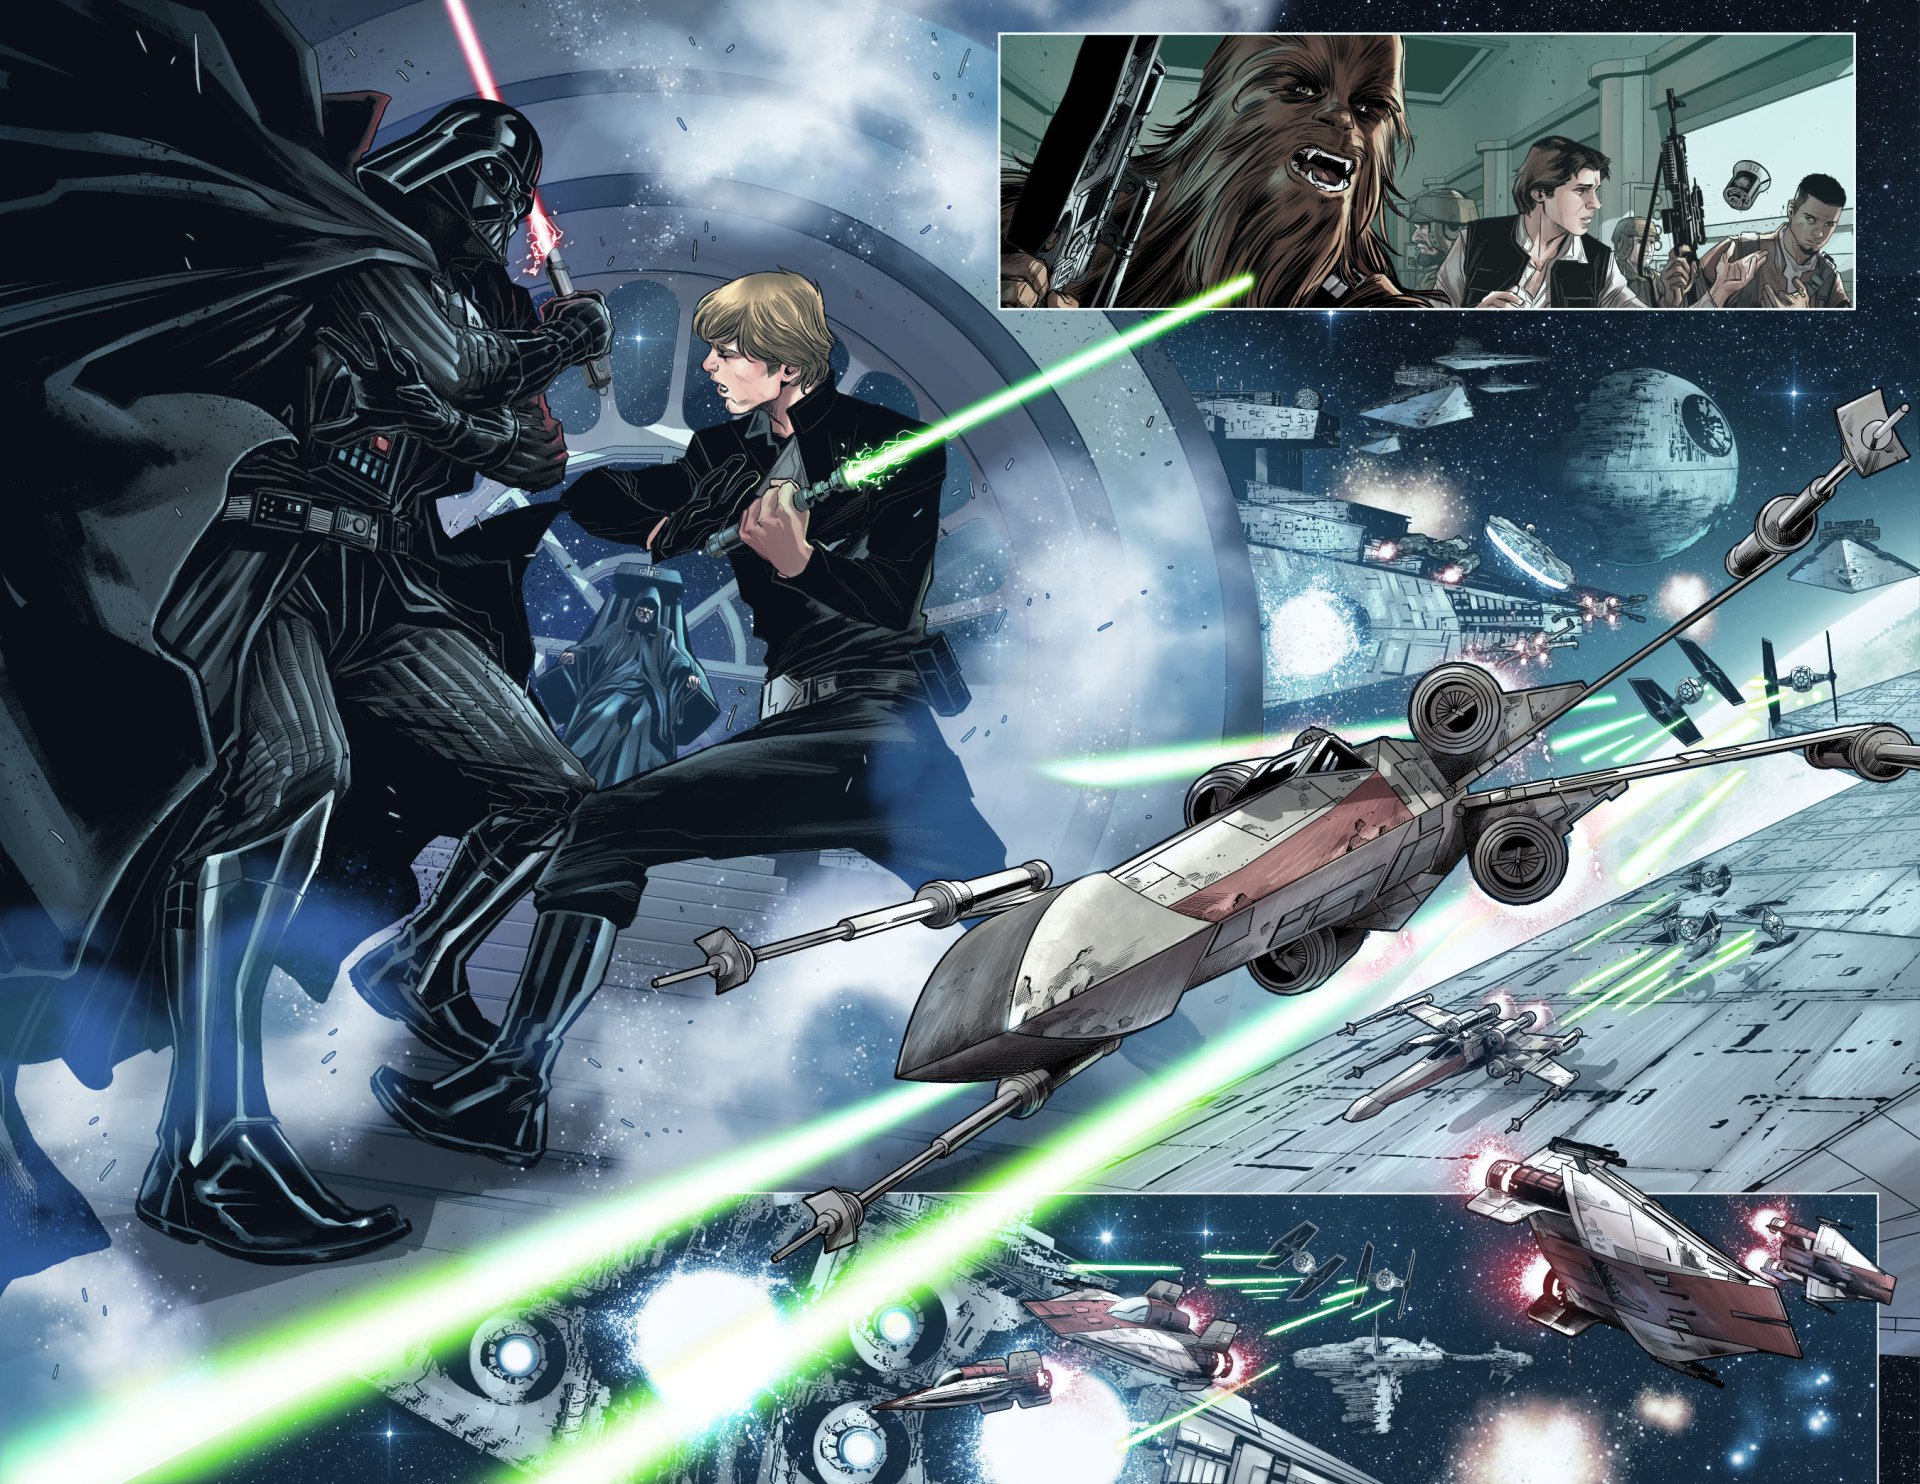 Comics - Star Wars  Luke Skywalker Darth Vader X-Wing Chewbacca Wallpaper